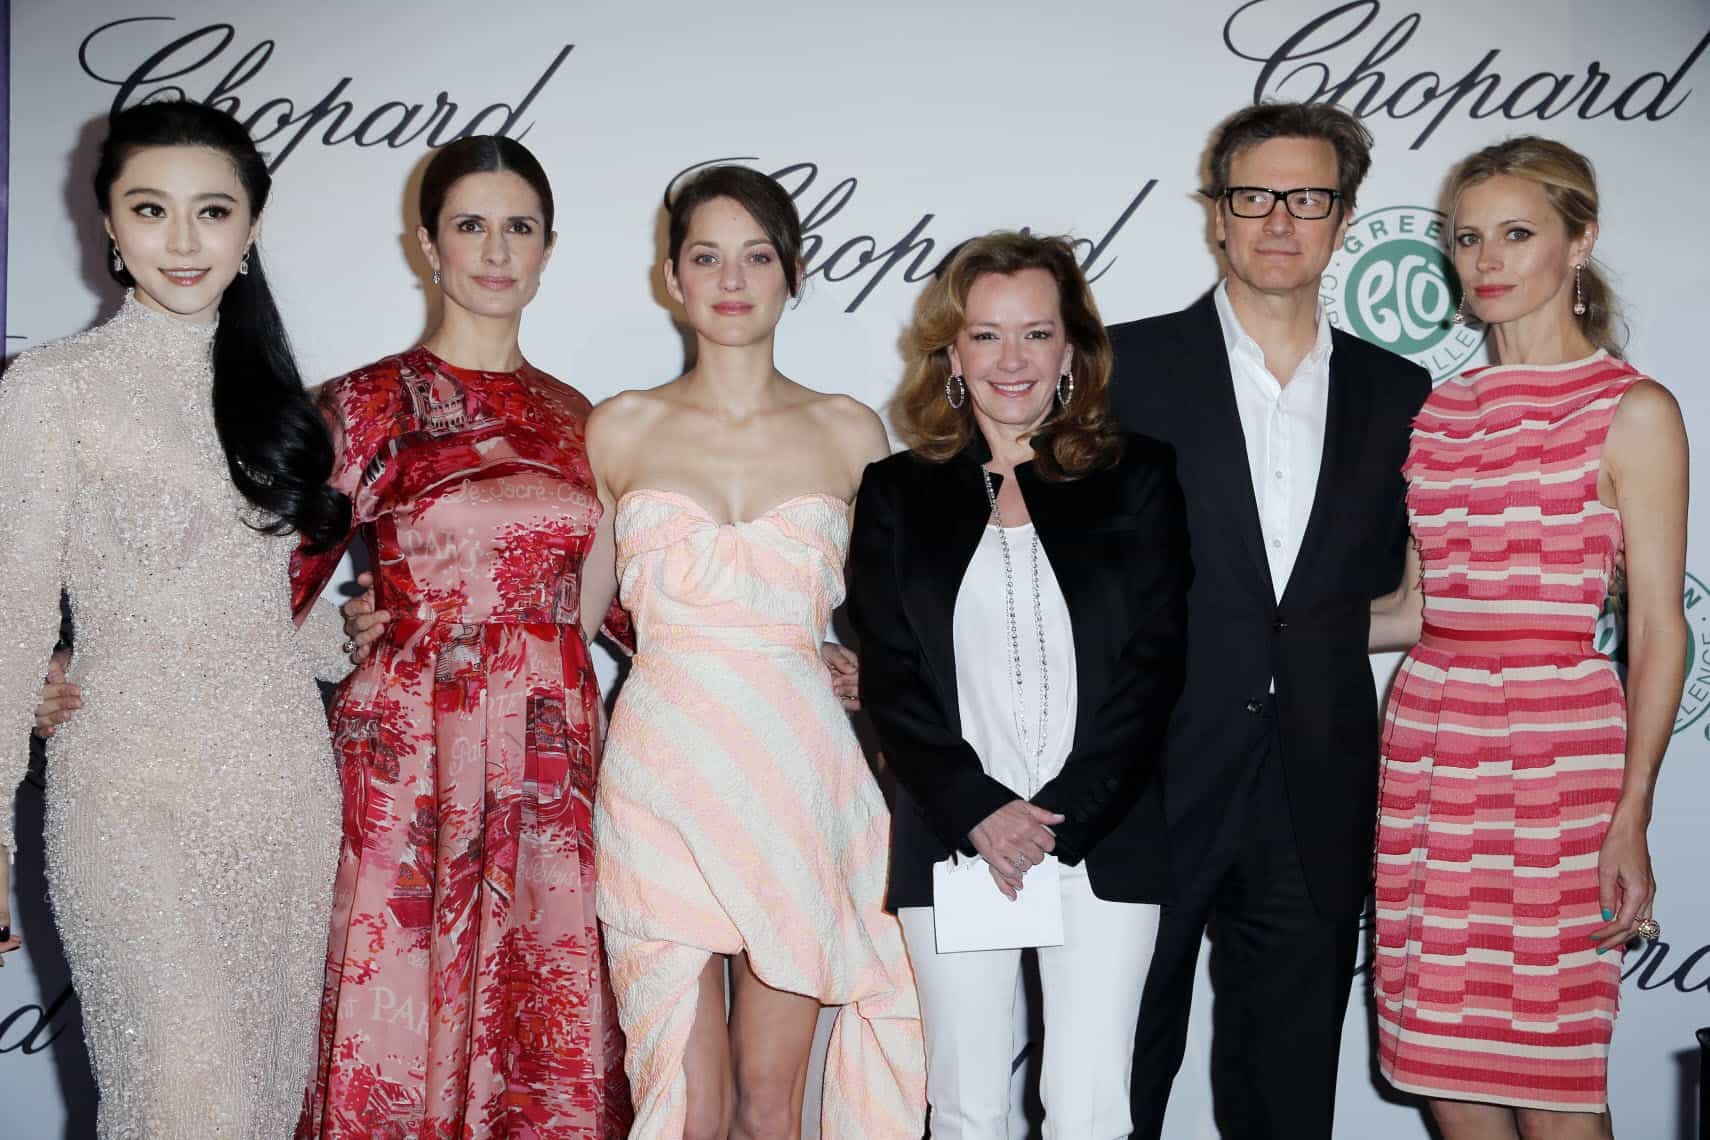 Chopard's vision towards sustainability